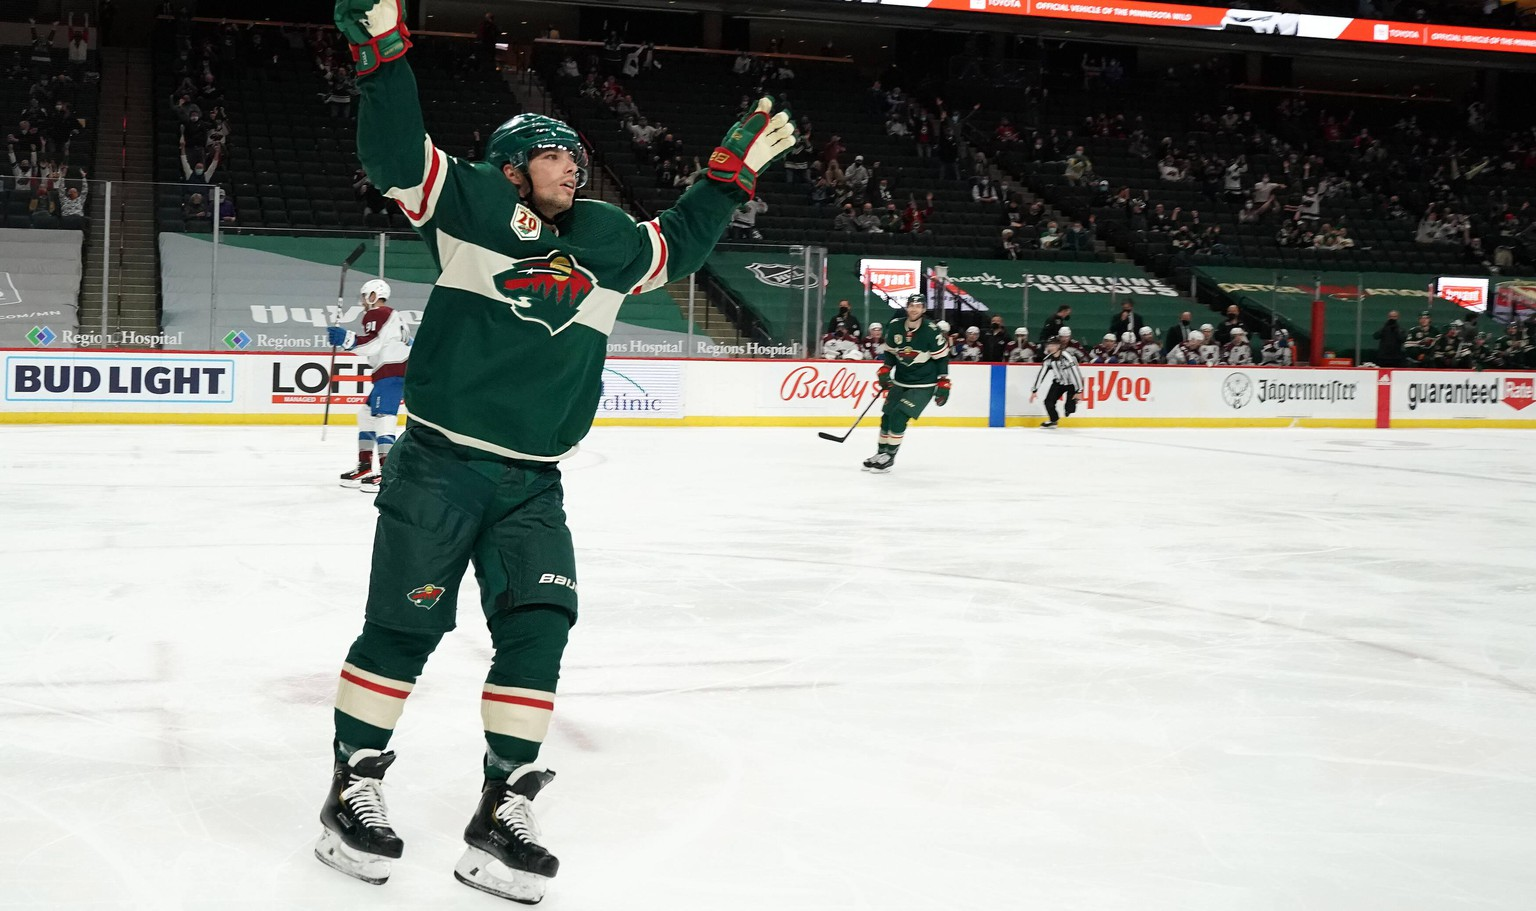 ST. PAUL, MN - APRIL 07: Minnesota Wild Right Wing Kevin Fiala 22 celebrates his 2nd goal of the night during the third period of an NHL, Eishockey Herren, USA game between the Minnesota Wild and Colorado Avalanche on April 7, 2021, at Xcel Energy Center, St. Paul, MN. Photo by Nick Wosika/Icon Sportswire NHL: APR 07 Avalanche at Wild Icon2021040723